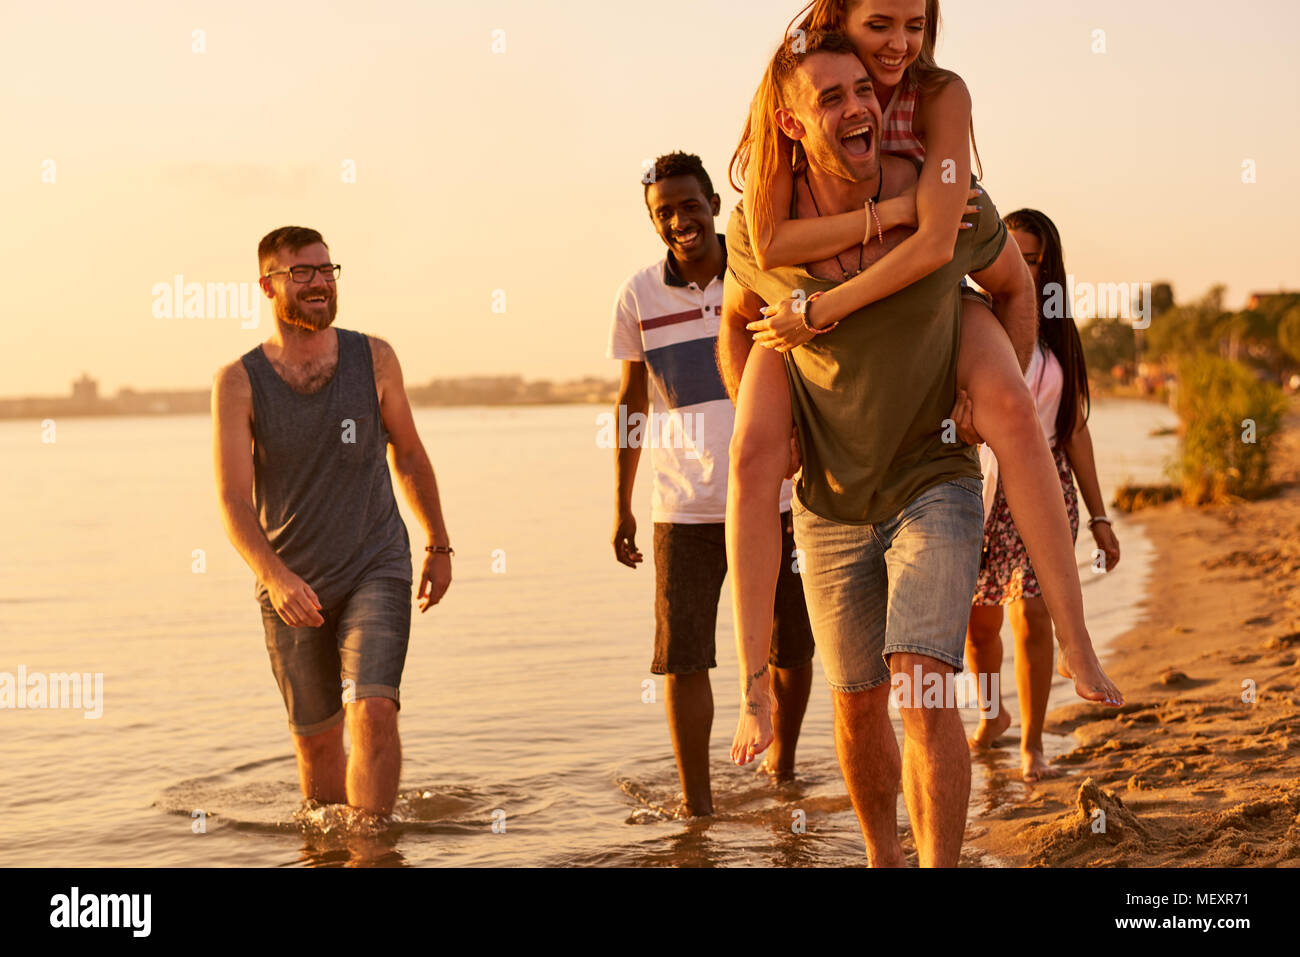 Cheerful friends marcher ensemble au littoral Photo Stock